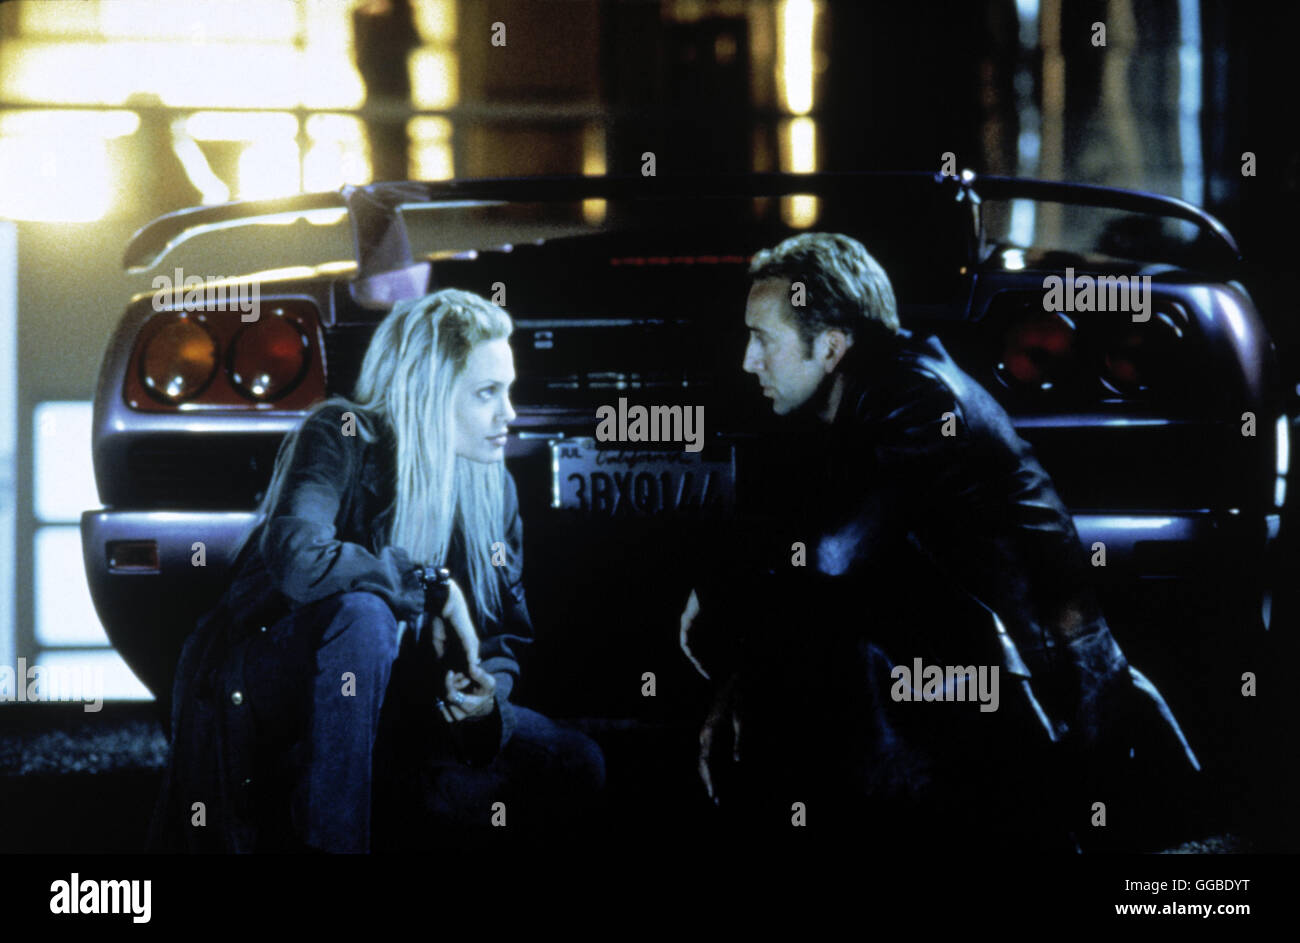 NUR NOCH 60 SEKUNDEN Gone in Sixty Seconds USA 2000 Dominic Sena Sway (ANGELINA JOLIE) and Randall (NICOLAS CAGE) Stock Photo